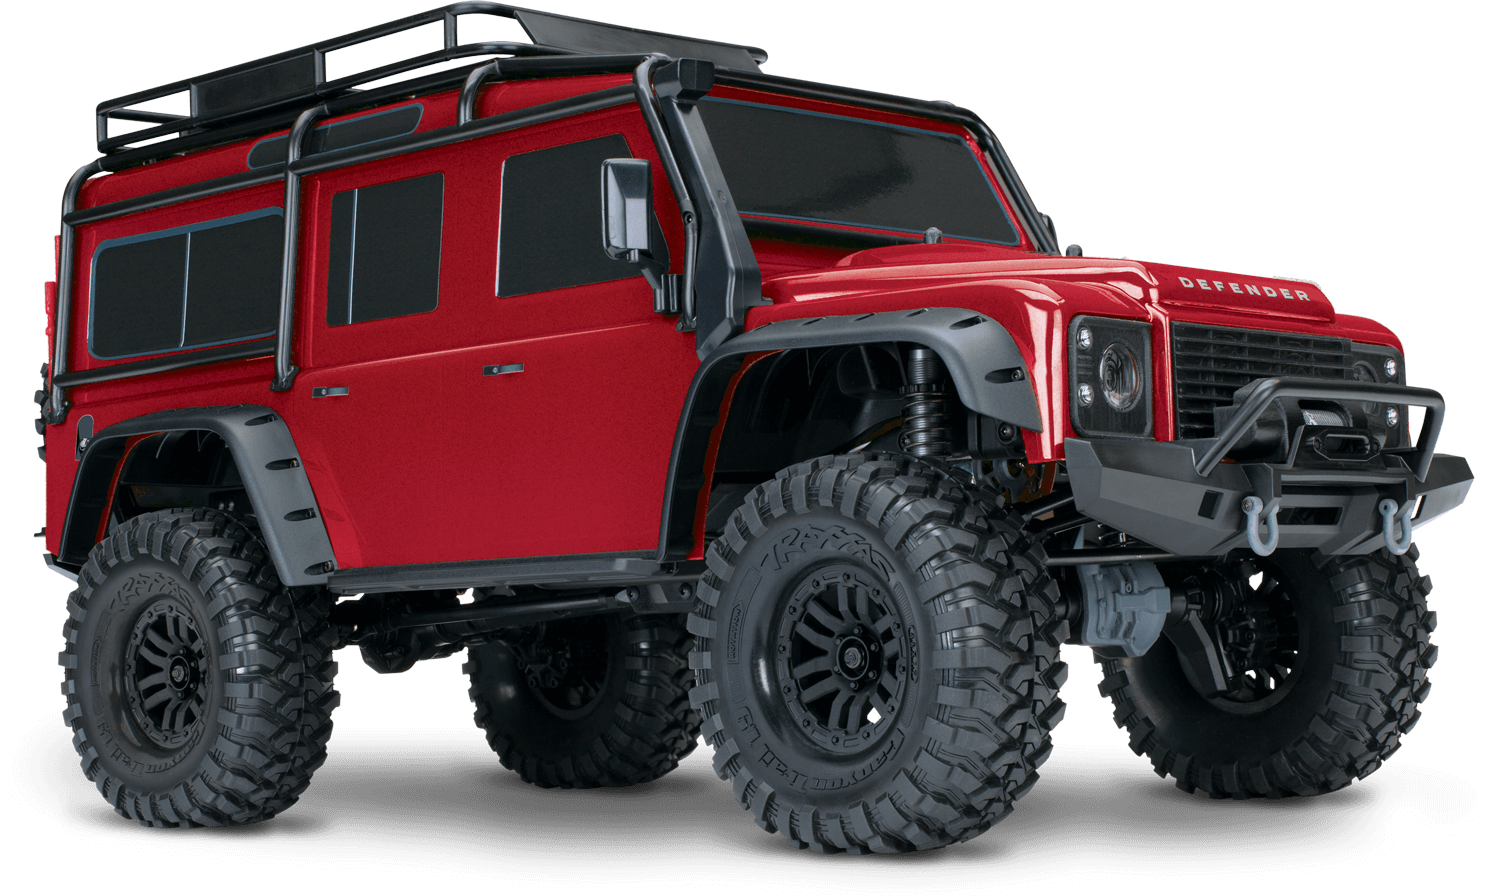 Traxxas Trx 4 Scale Trail Crawler Rover 820 Wiring Diagram Land And The Logo Are Trademarks Owned Licensed By Jaguar Limited